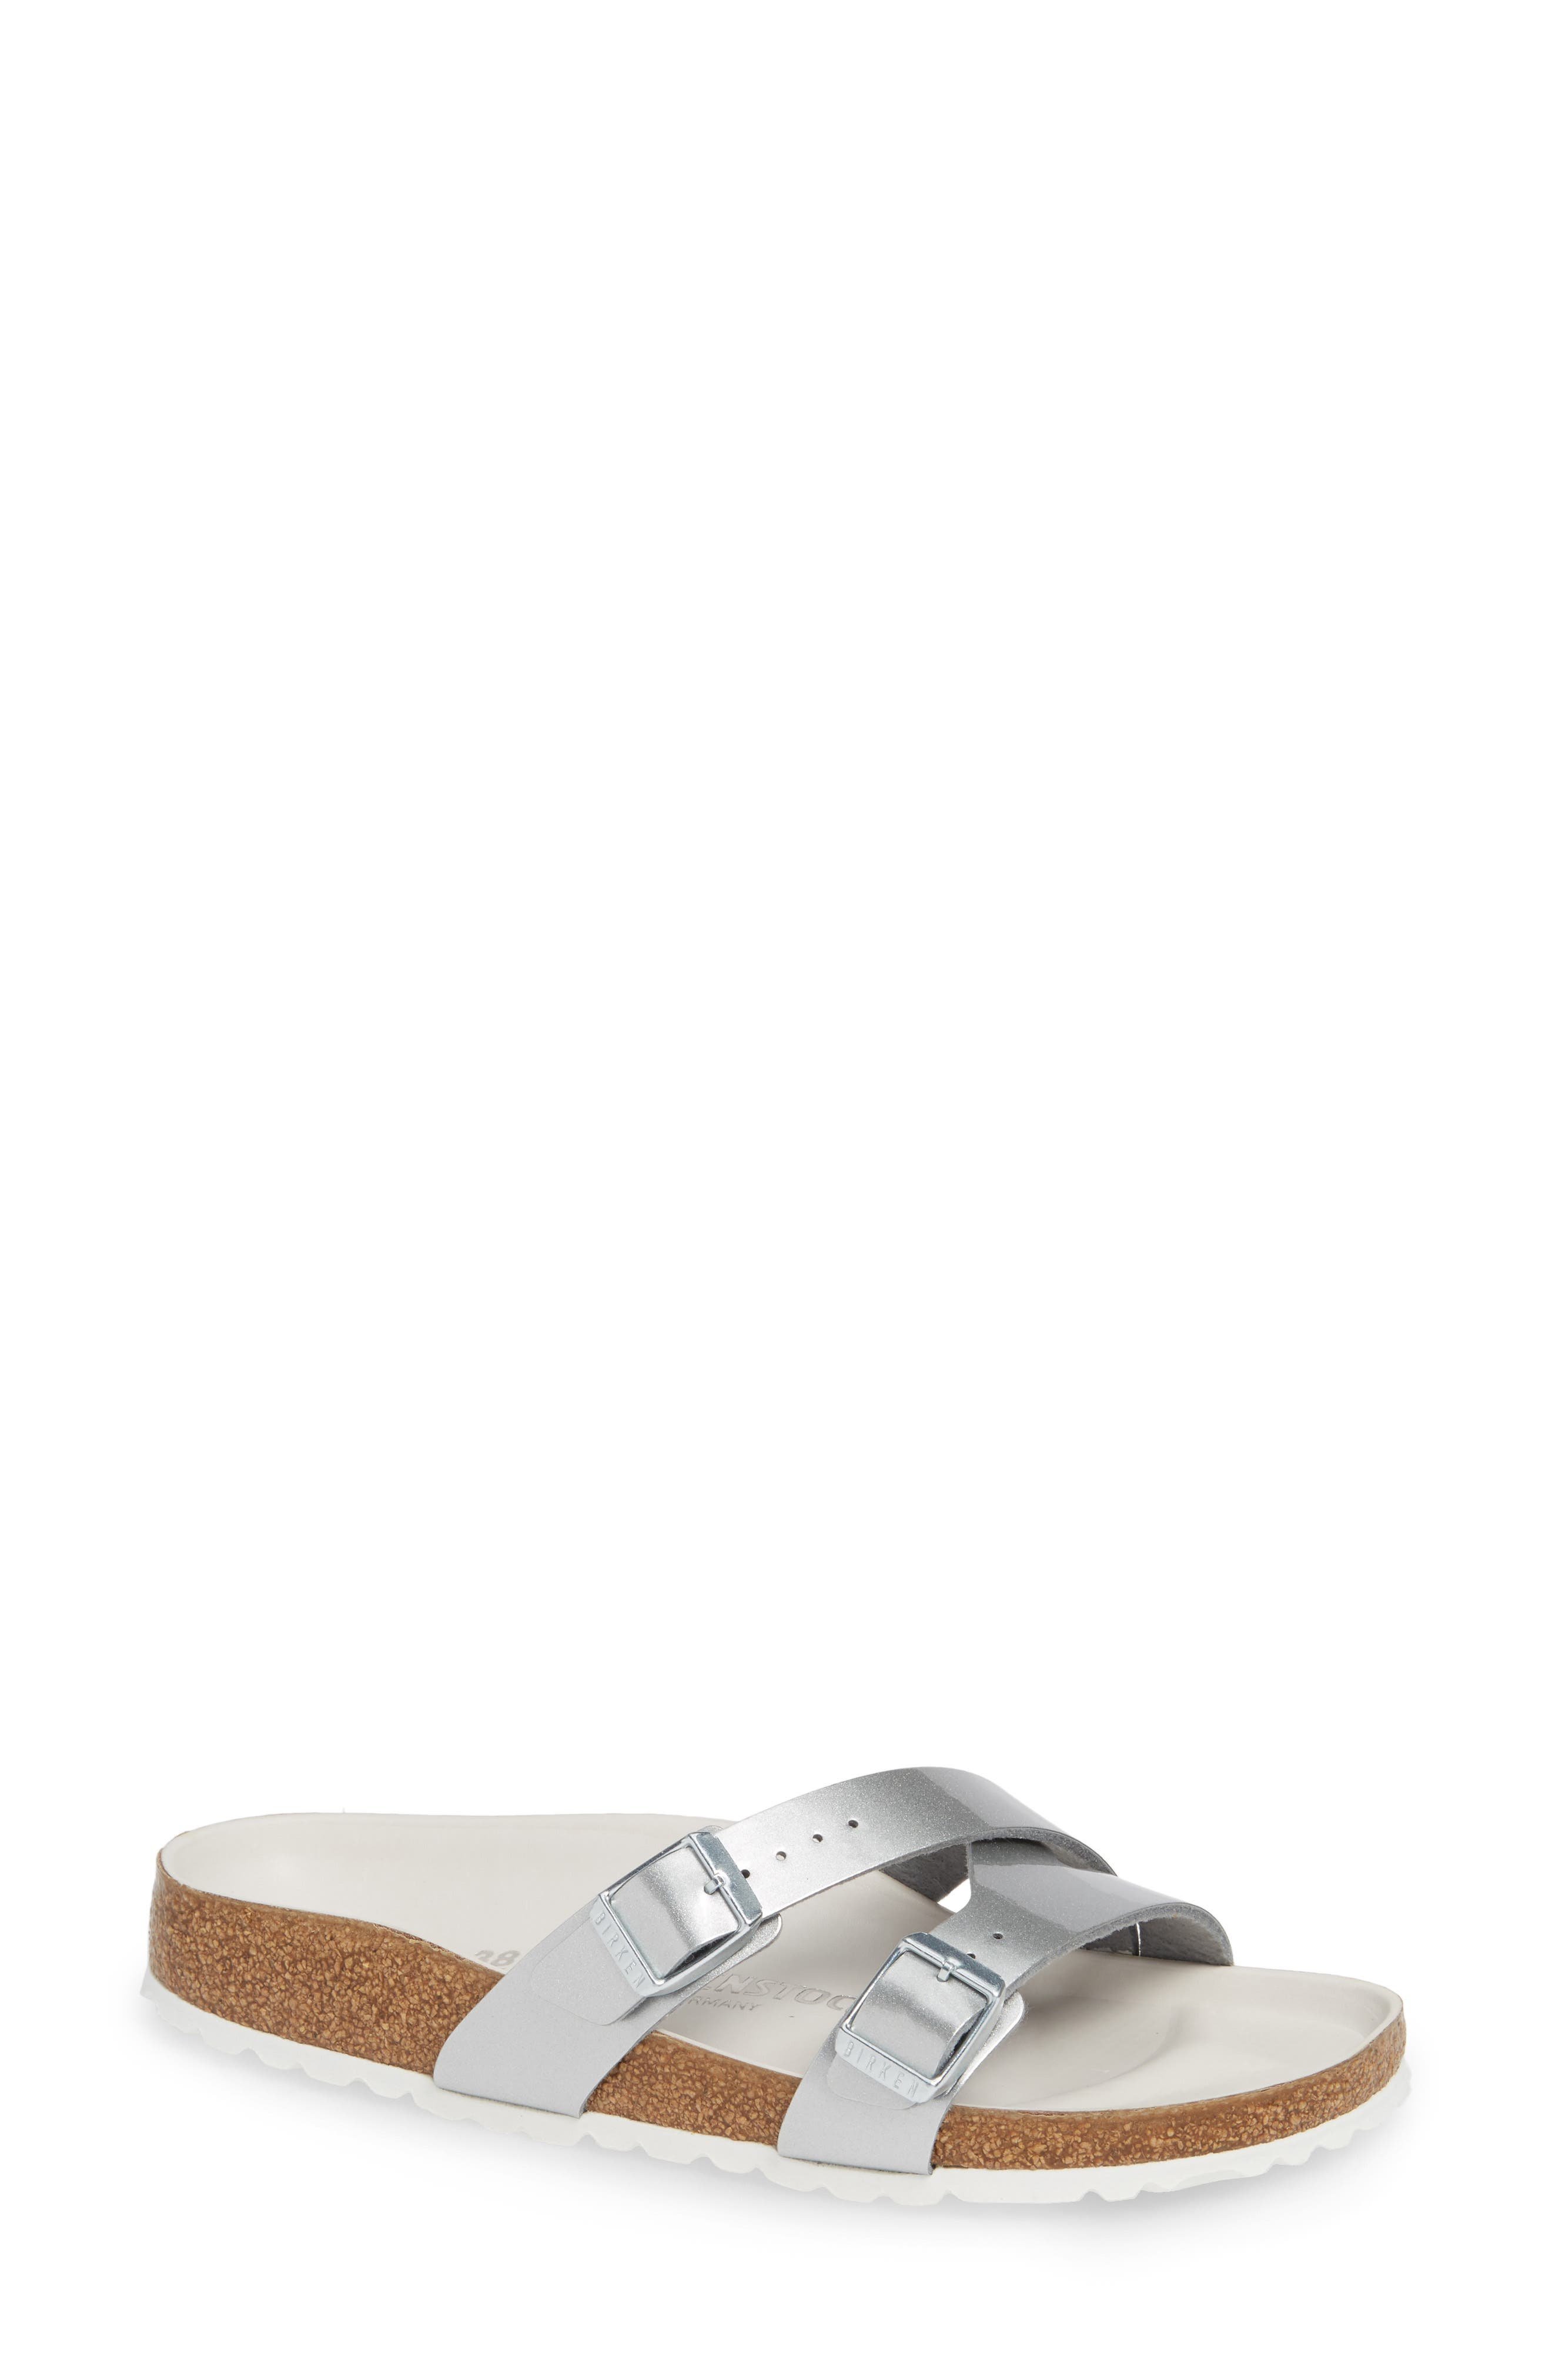 BIRKENSTOCK,                             Yao Metallic Slide Sandal,                             Main thumbnail 1, color,                             METALLIC SILVER